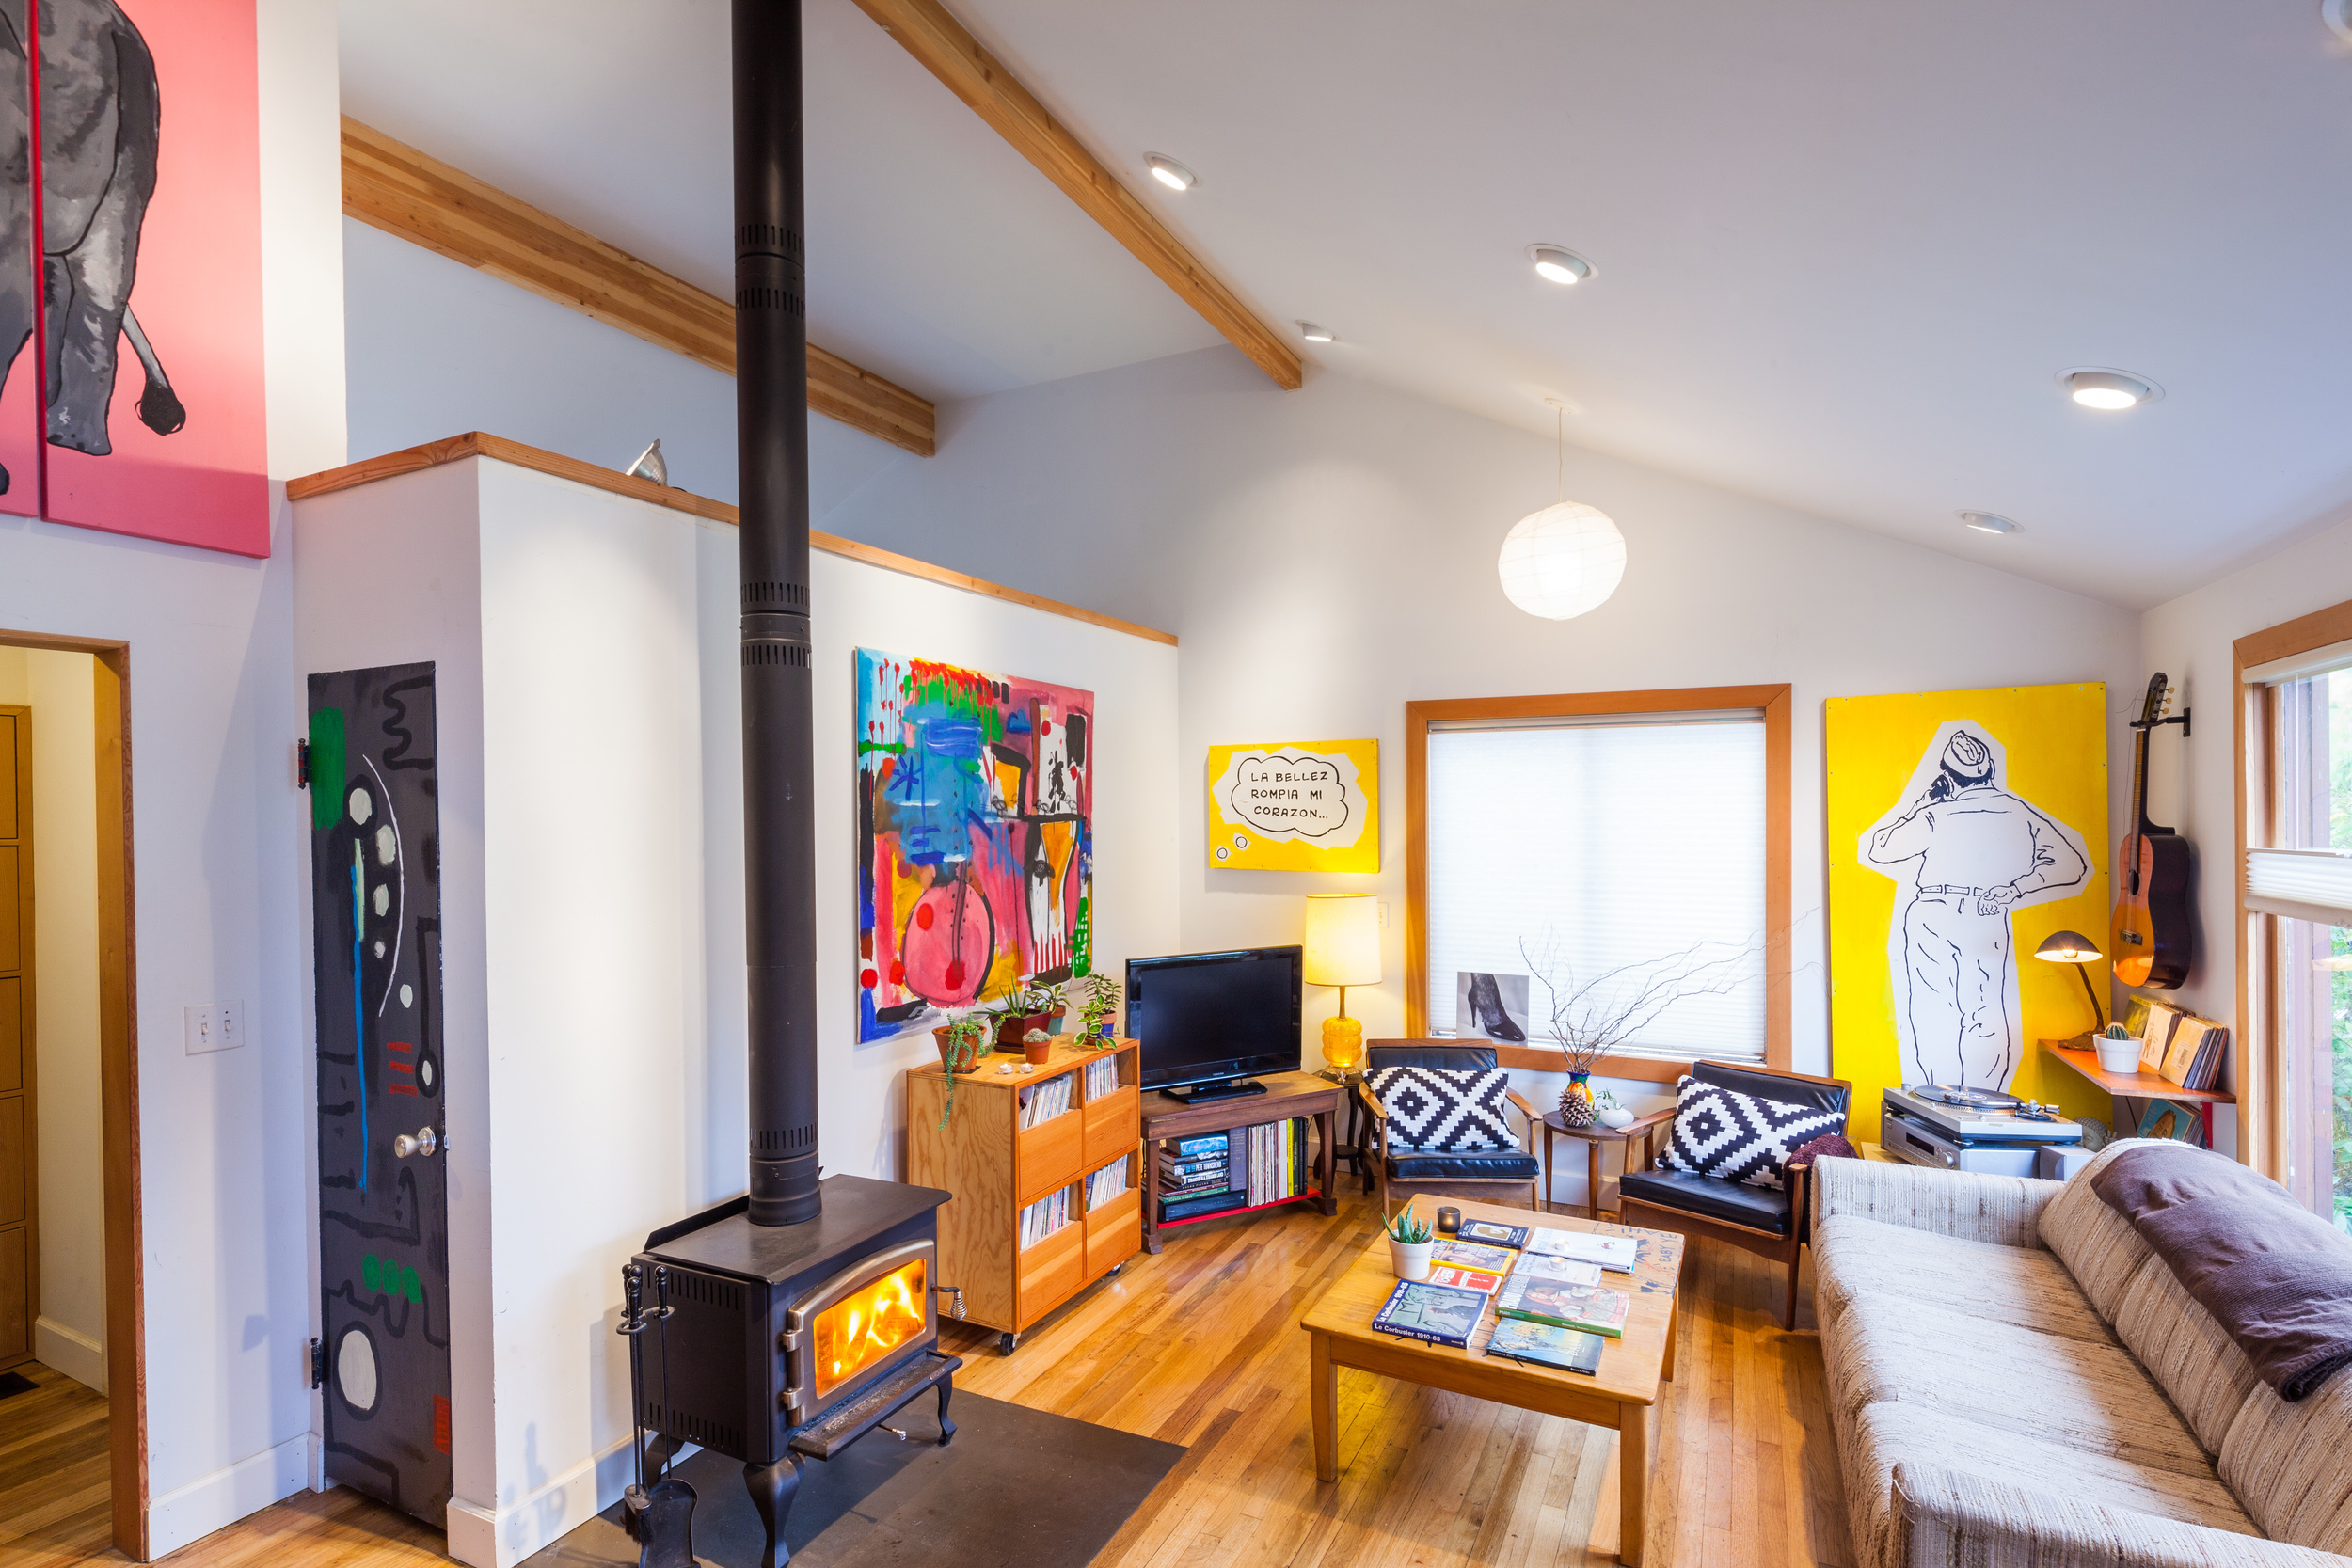 Woodstock Remodel    click  to view more photos